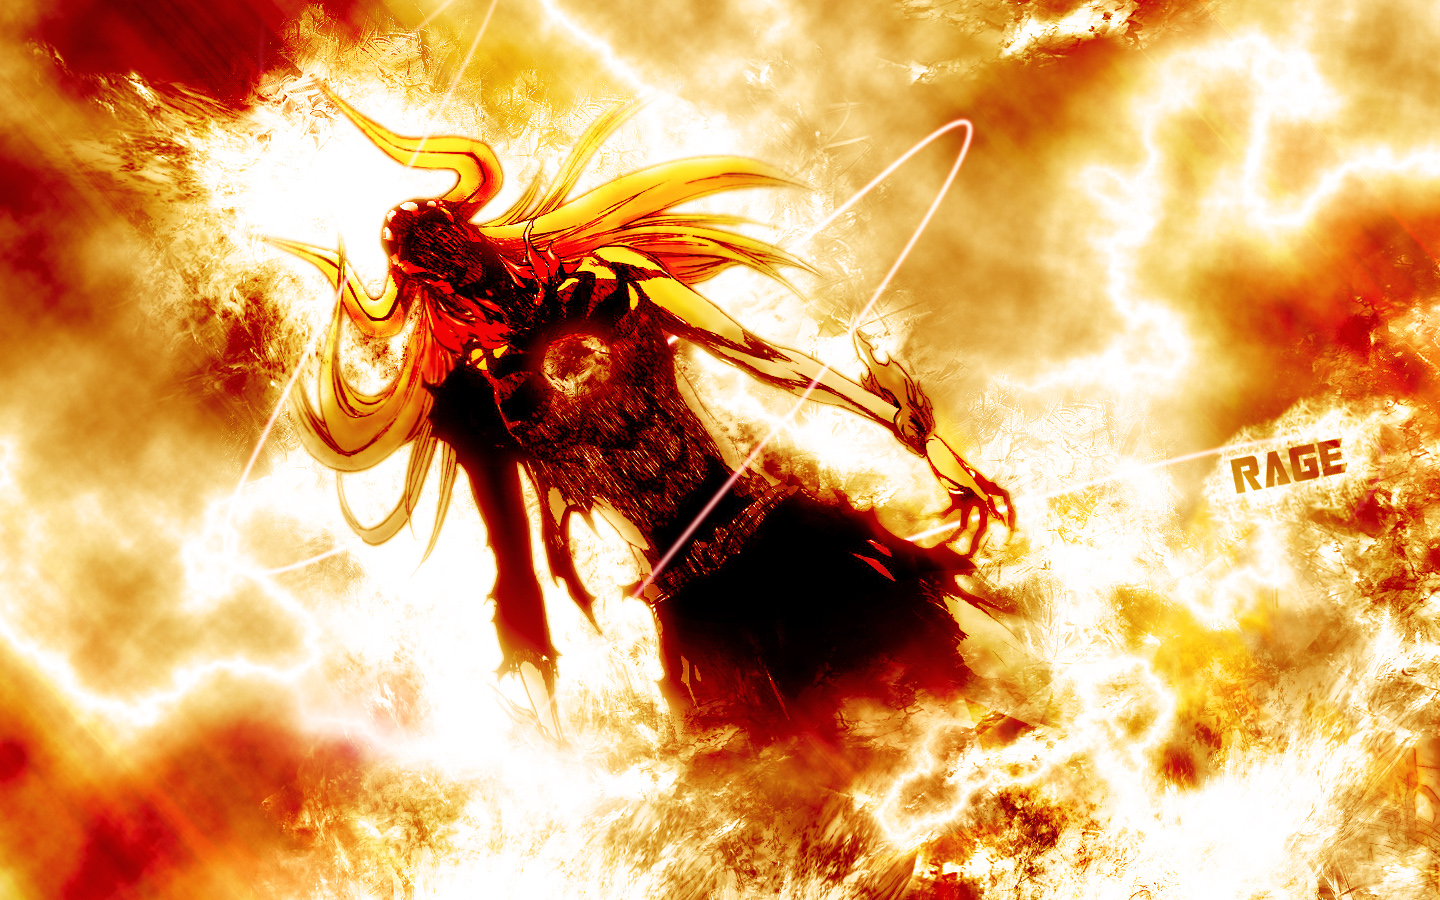 http://2.bp.blogspot.com/-1HJrW2PM5Xk/T3tvmFPh3fI/AAAAAAAAAfI/65ySN1zeRLs/s1600/5619-bleach-hd-wallpapers.jpg